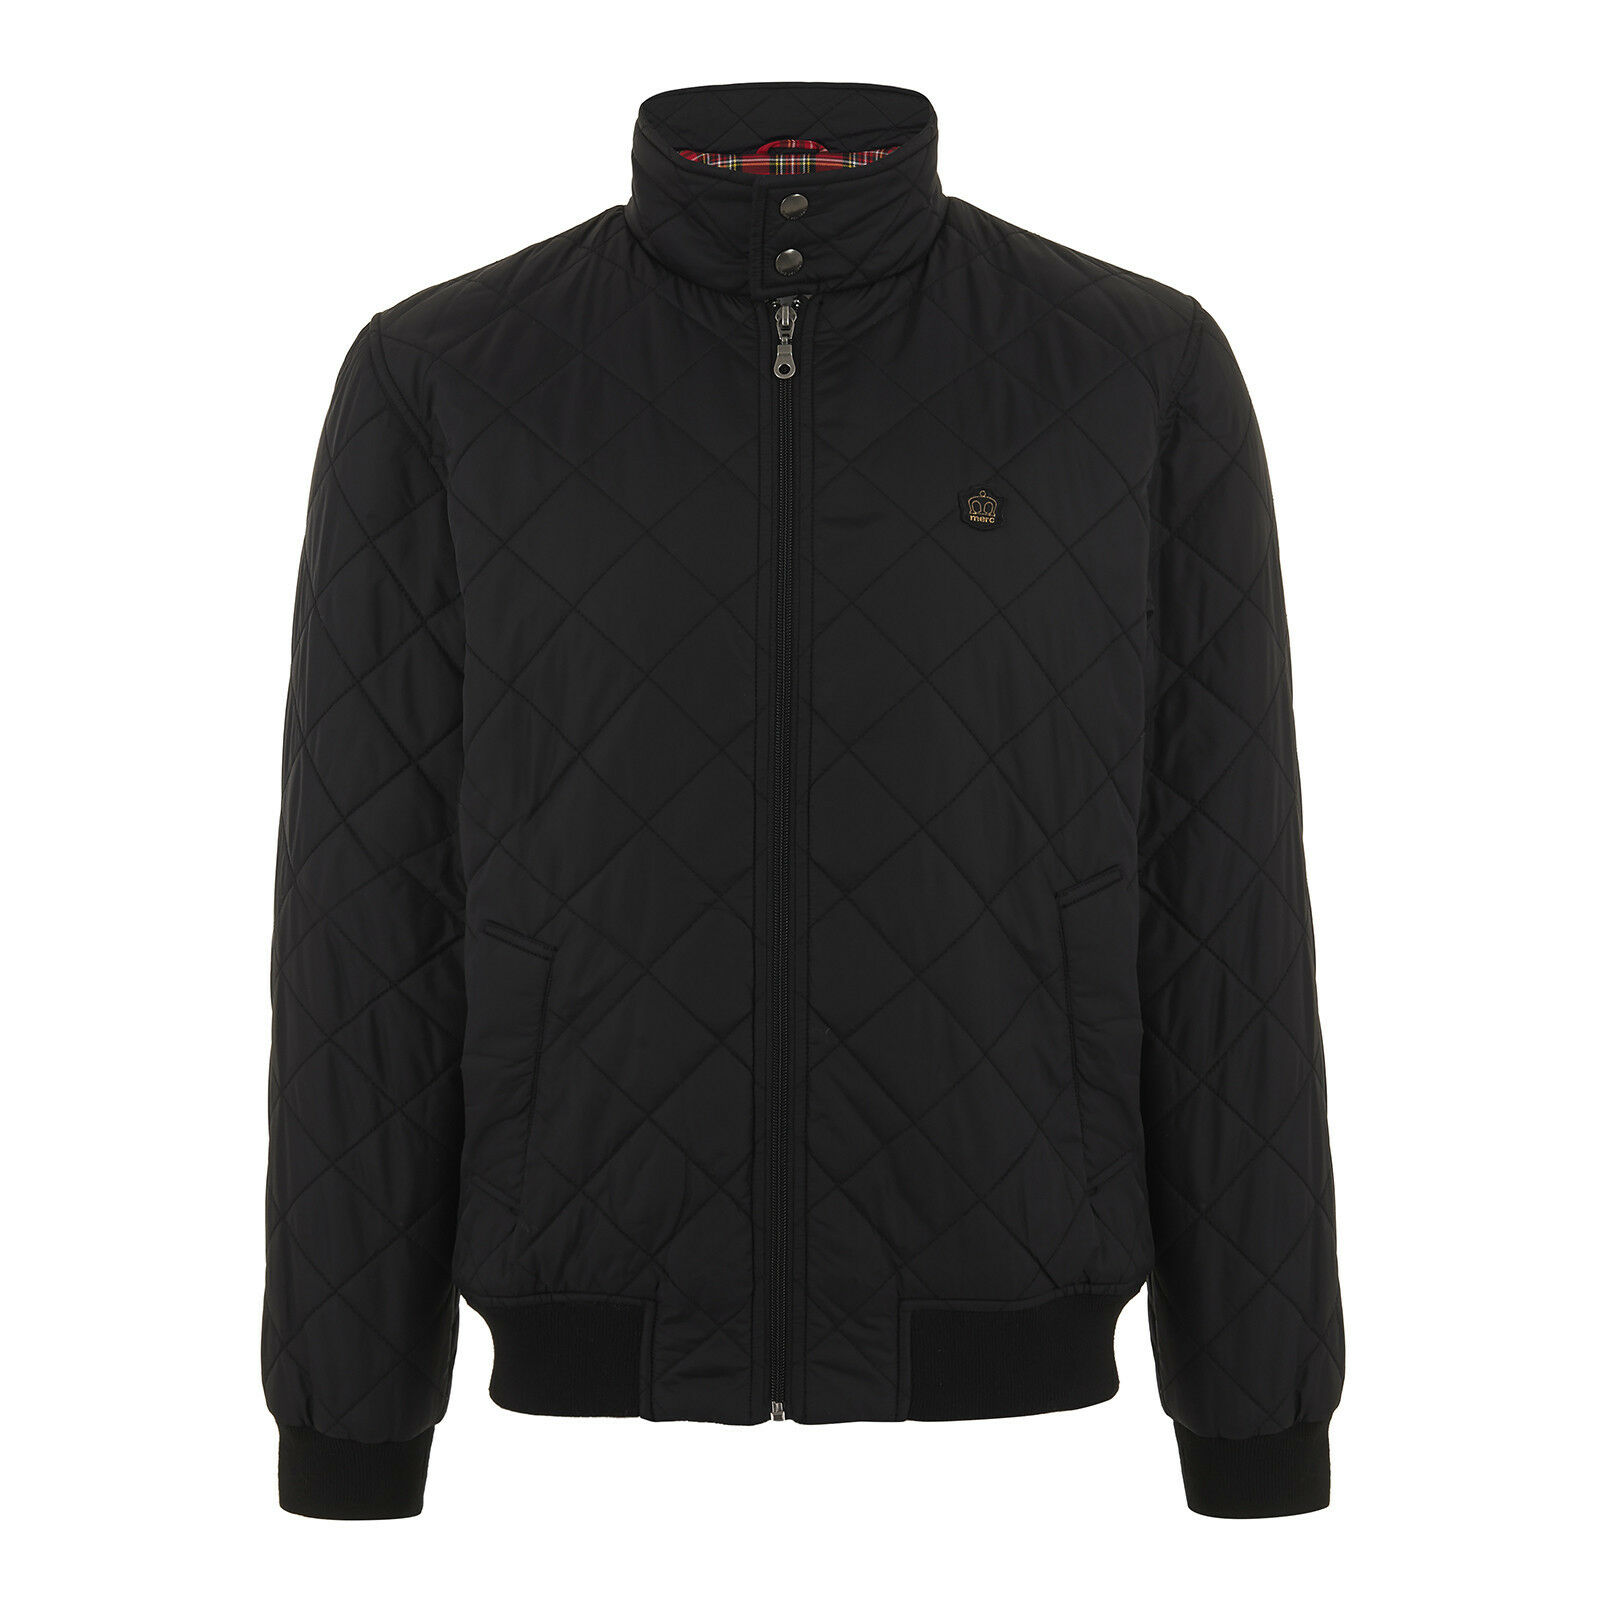 MERC LONDON GIUBBINO HUME QUILTED JACKET NERO M L XL GIACCA HARRINGTON IMBOTTITO